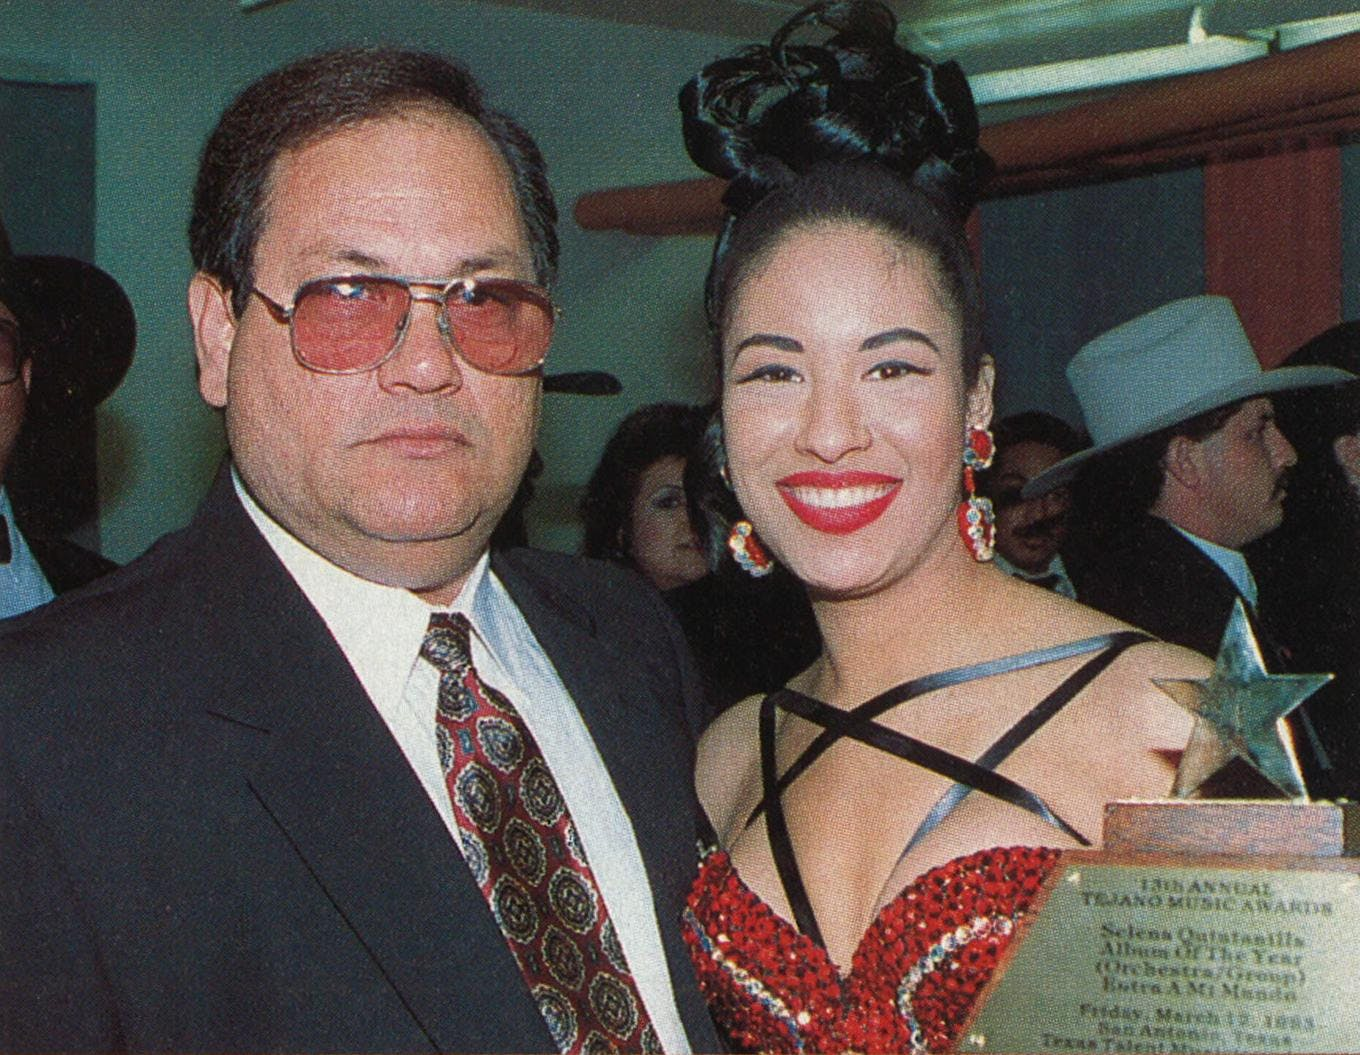 Selena and her father, Abraham Quintanilla, Jr., at the 1994 Tejano Music Awards.